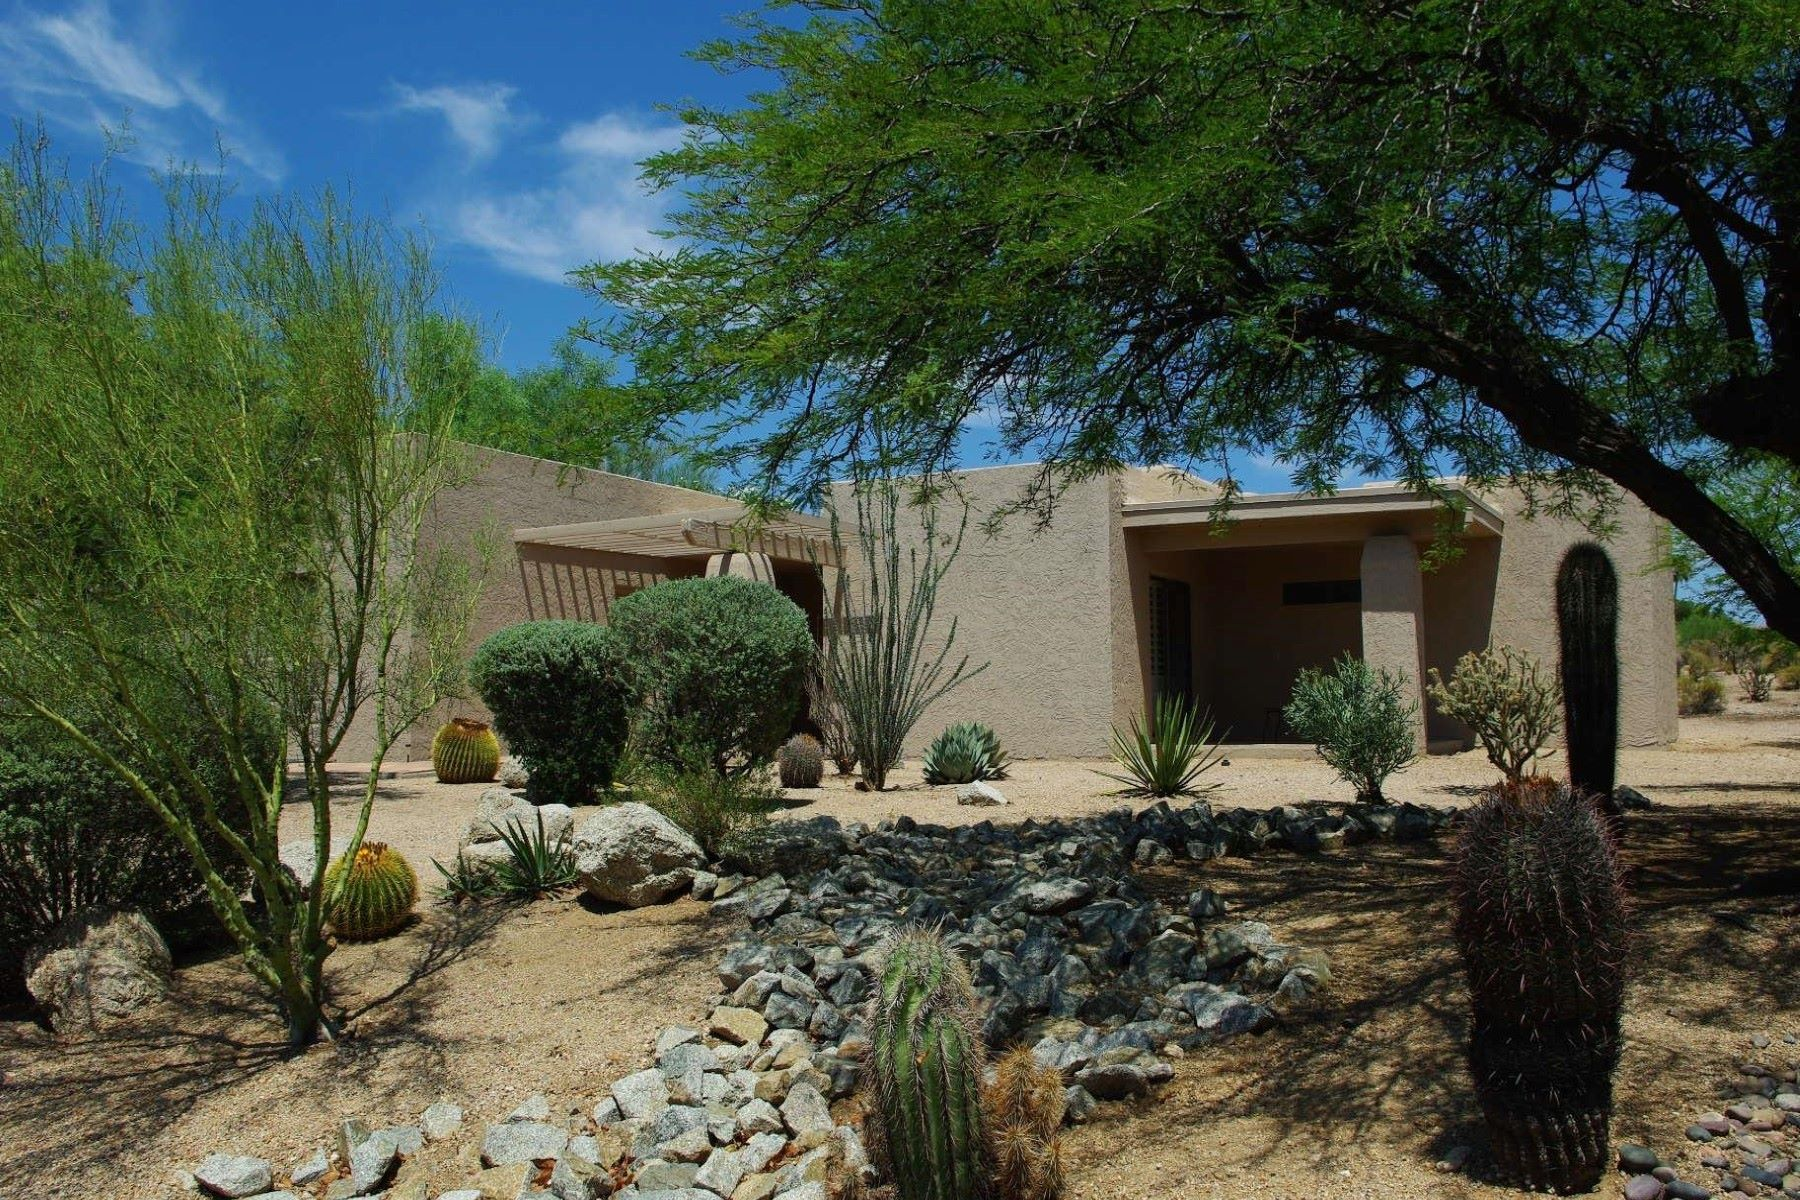 Single Family Home for Sale at Located with backing to the 15th hole of the Boulders Golf Course. 1725 E Staghorn Ln Carefree, Arizona, 85377 United States